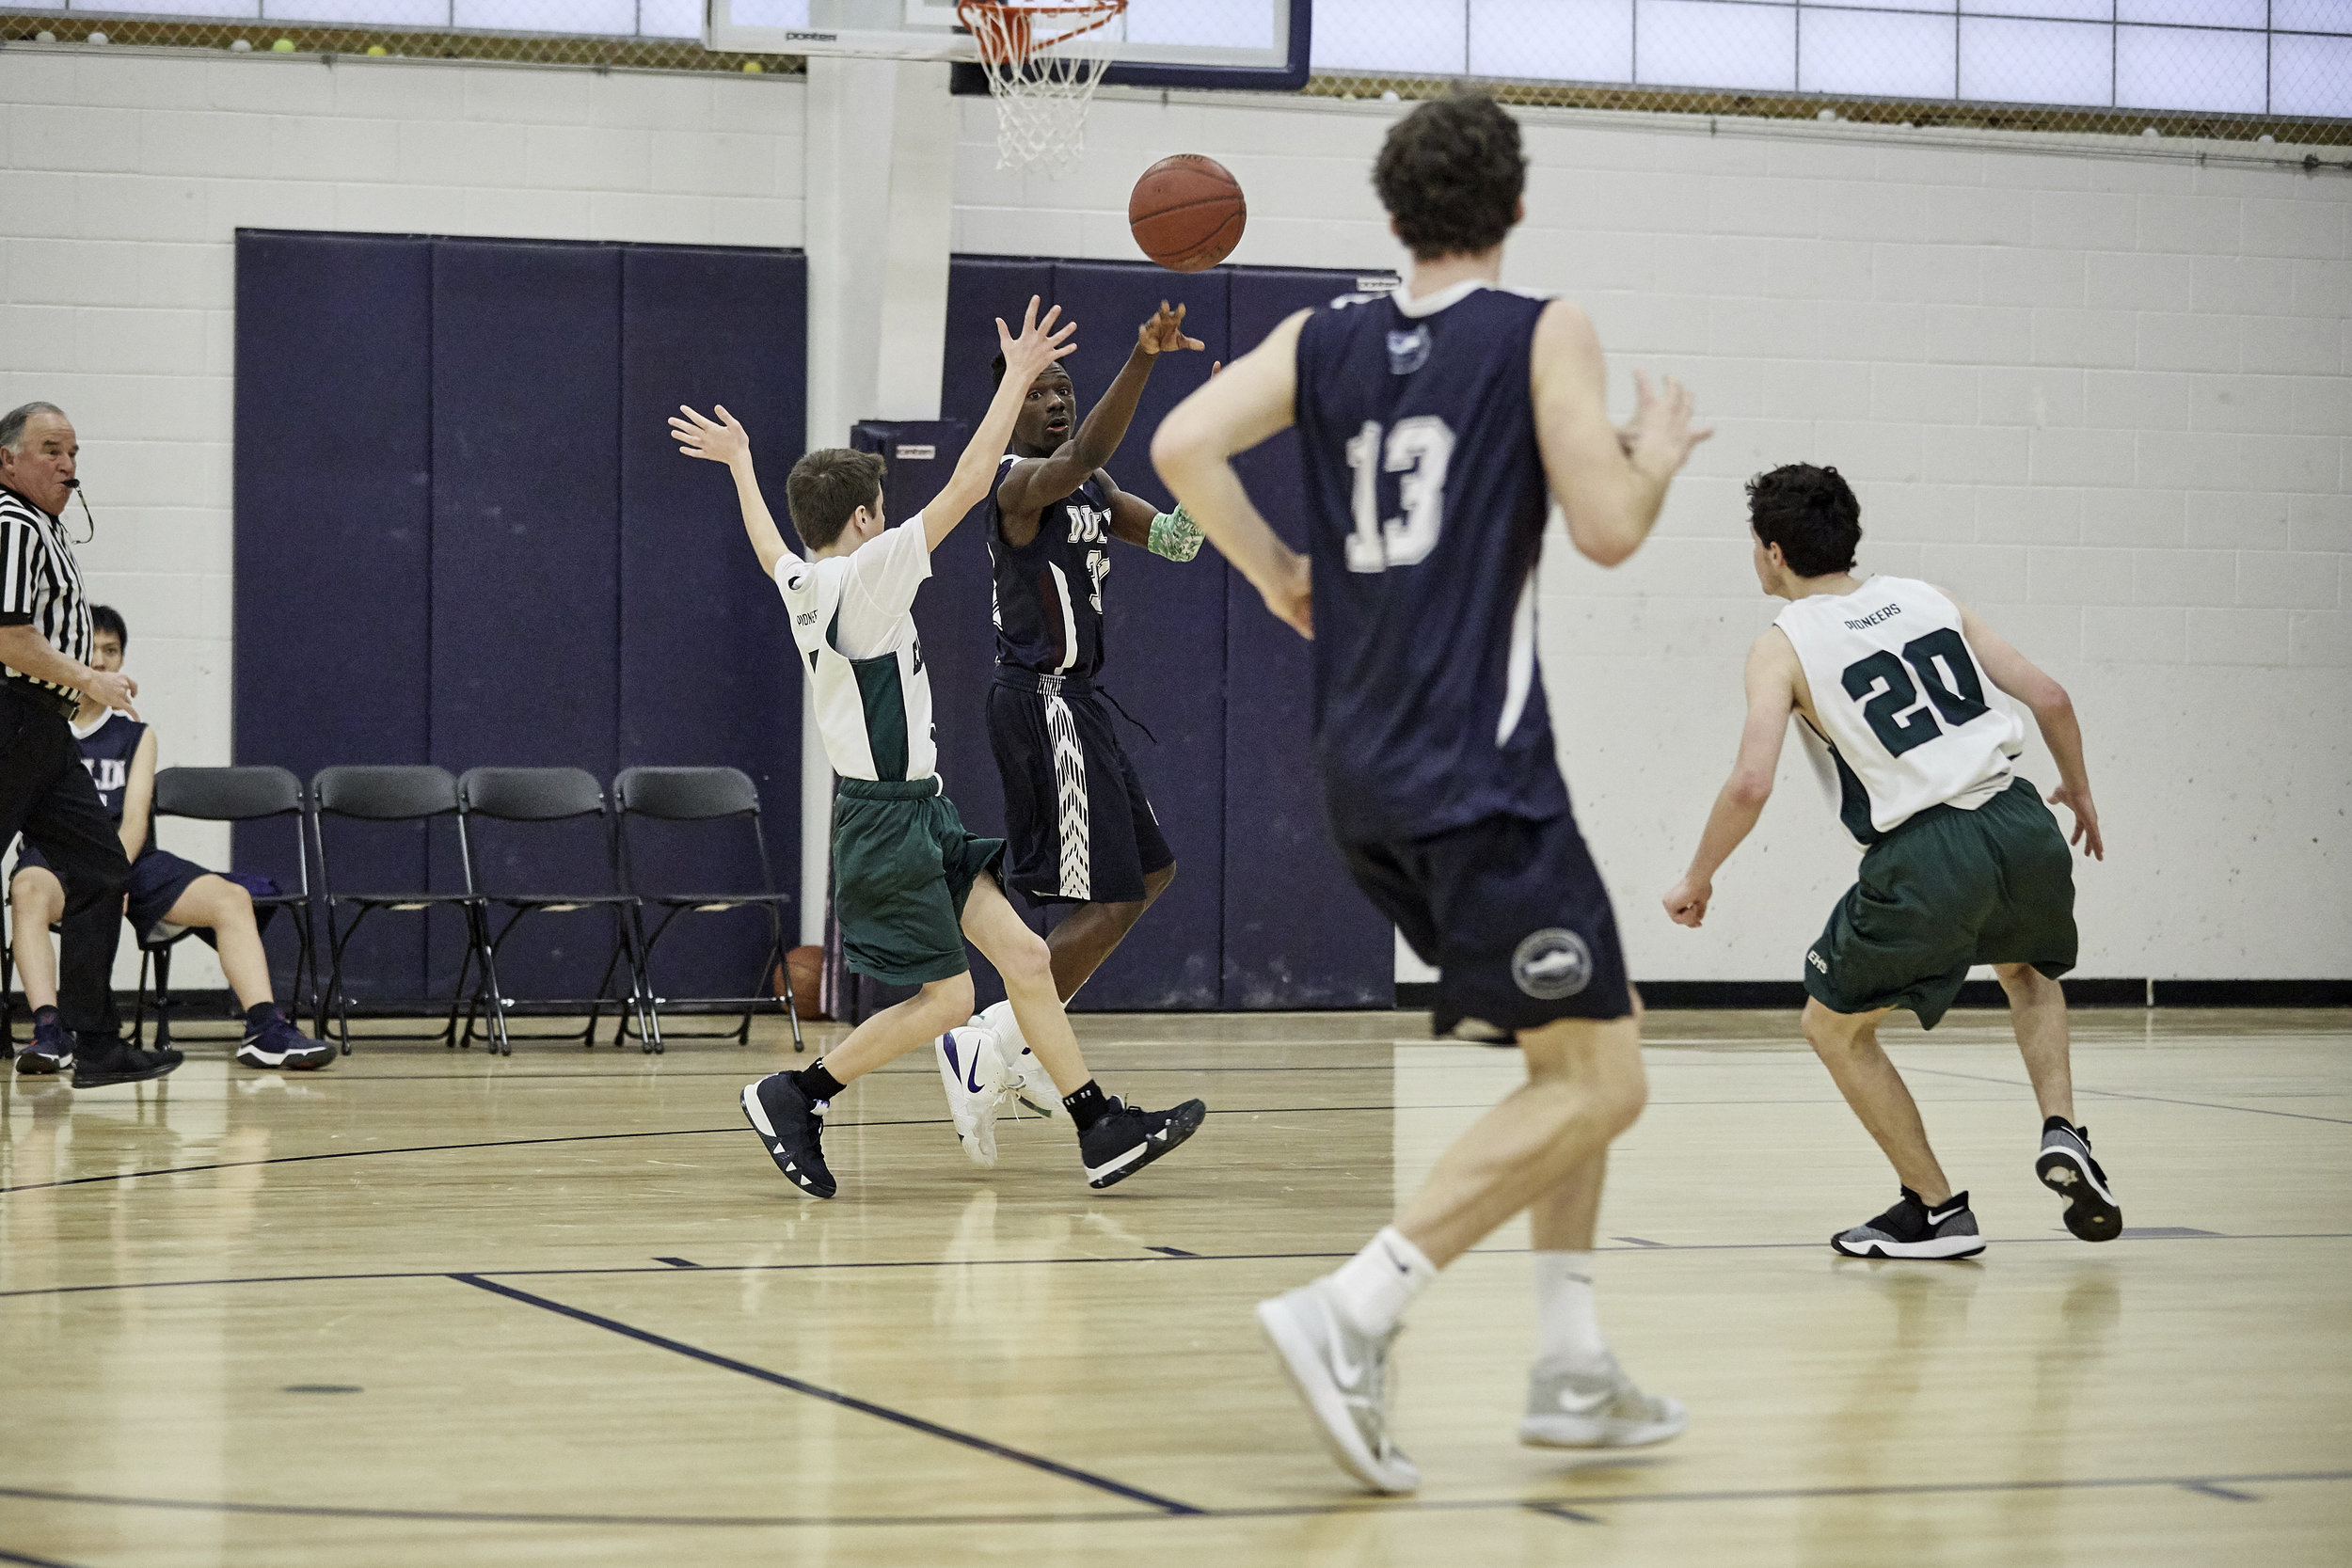 Boys Varsity Basketball vs. Eagle Hill School JV at RVAL Tournament - February 11, 2019 - 168008.jpg